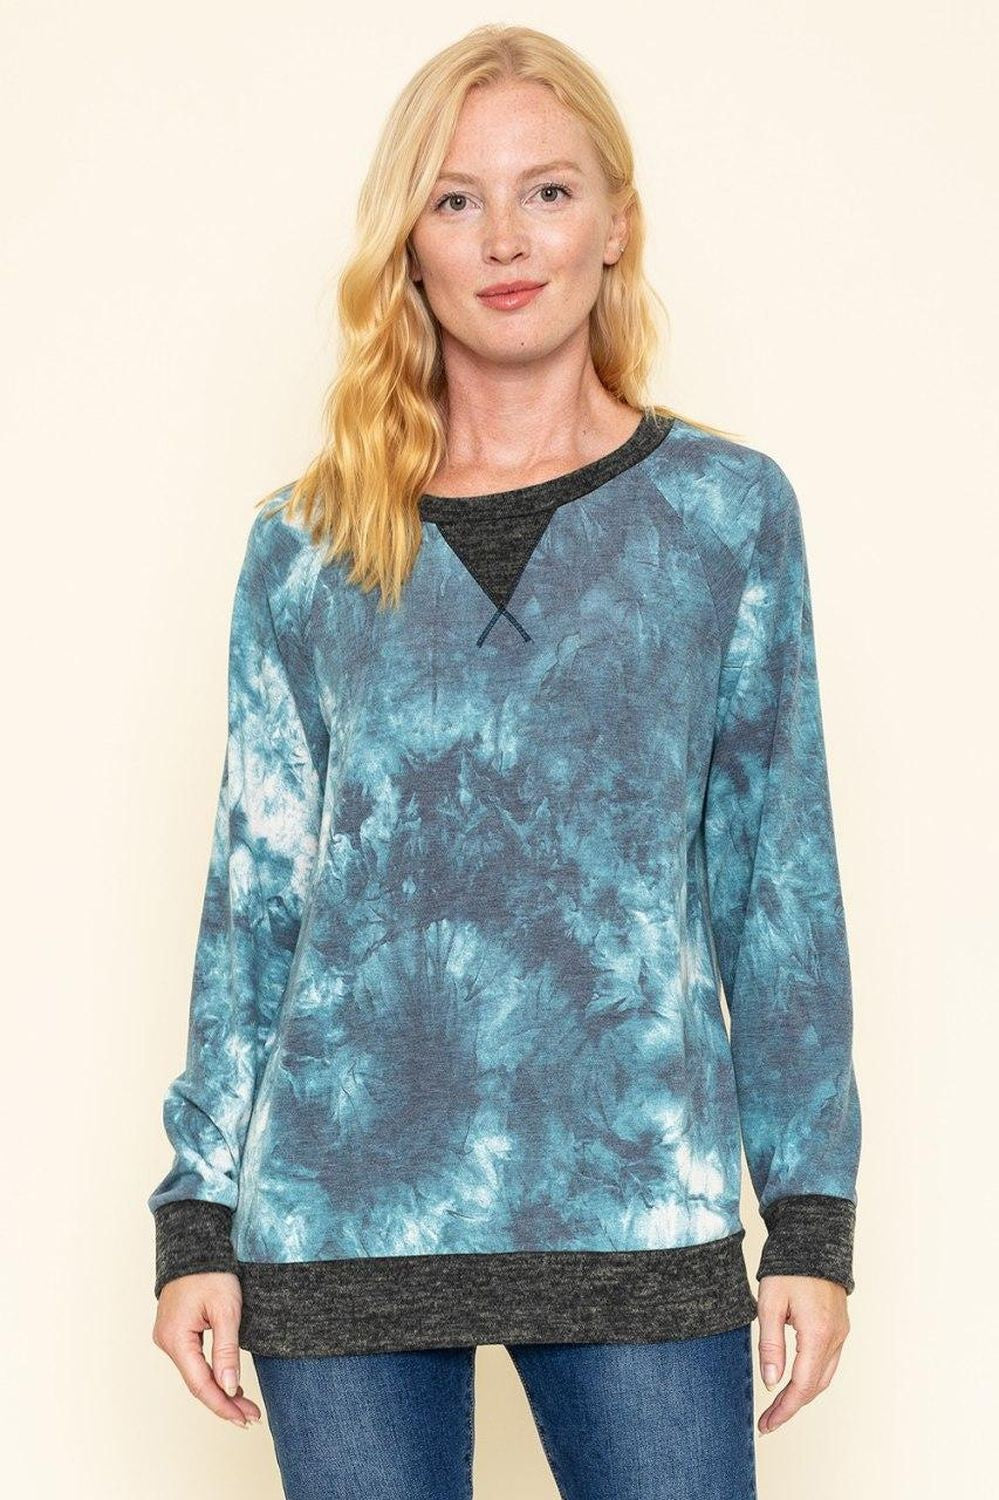 Aqua Tie Dye Charcoal Trim Long Sleeve Top